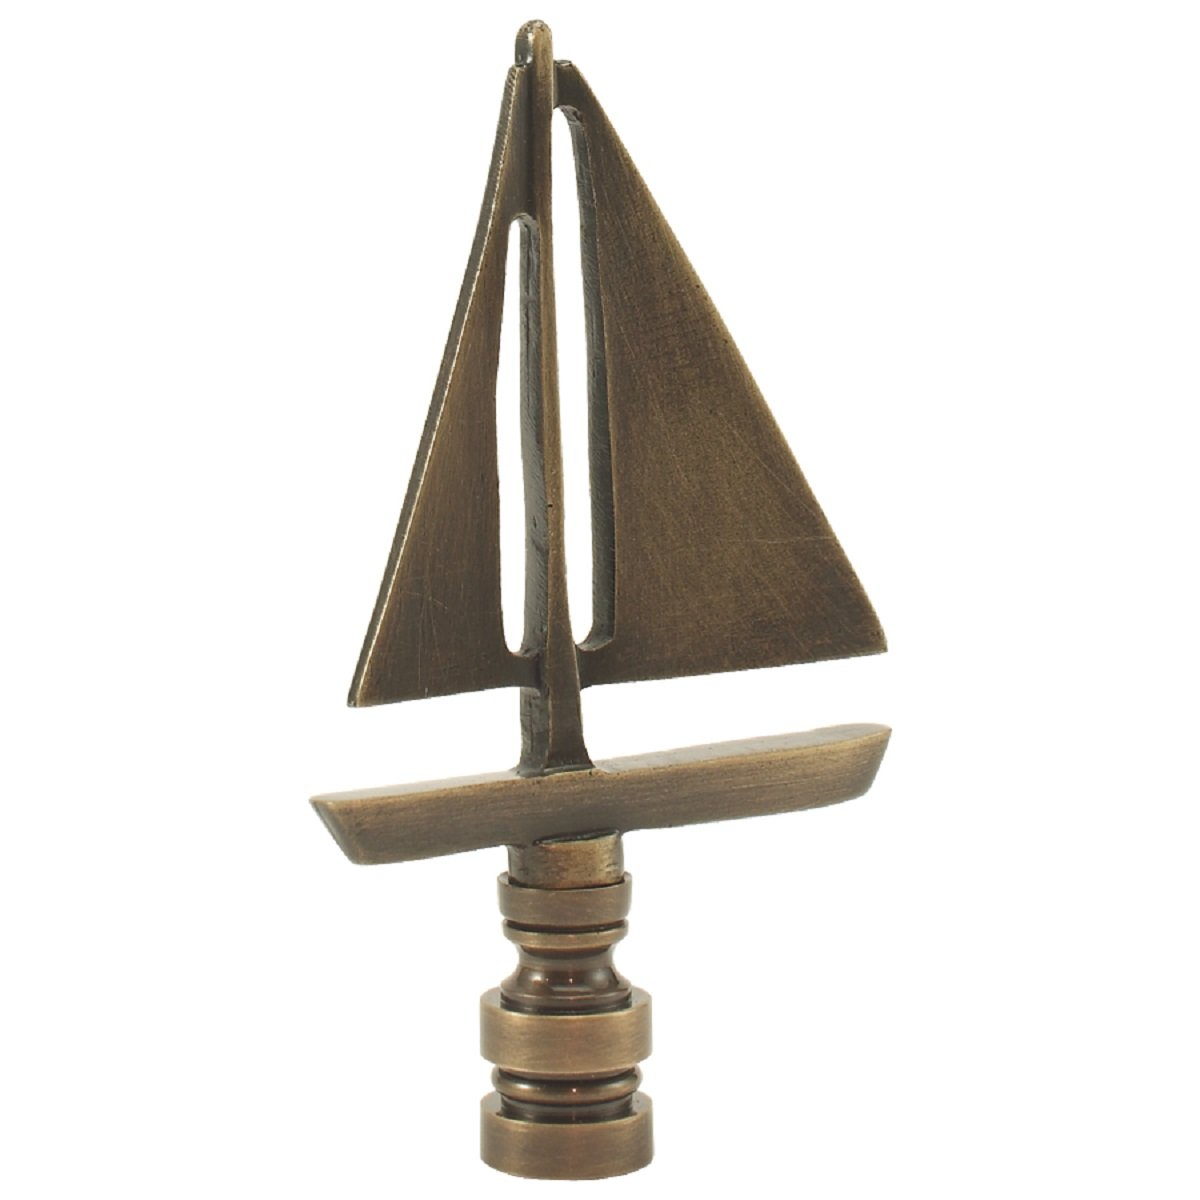 Sailboat - Antique Brass finish - 3.5 Inches high - 2 Inches wide